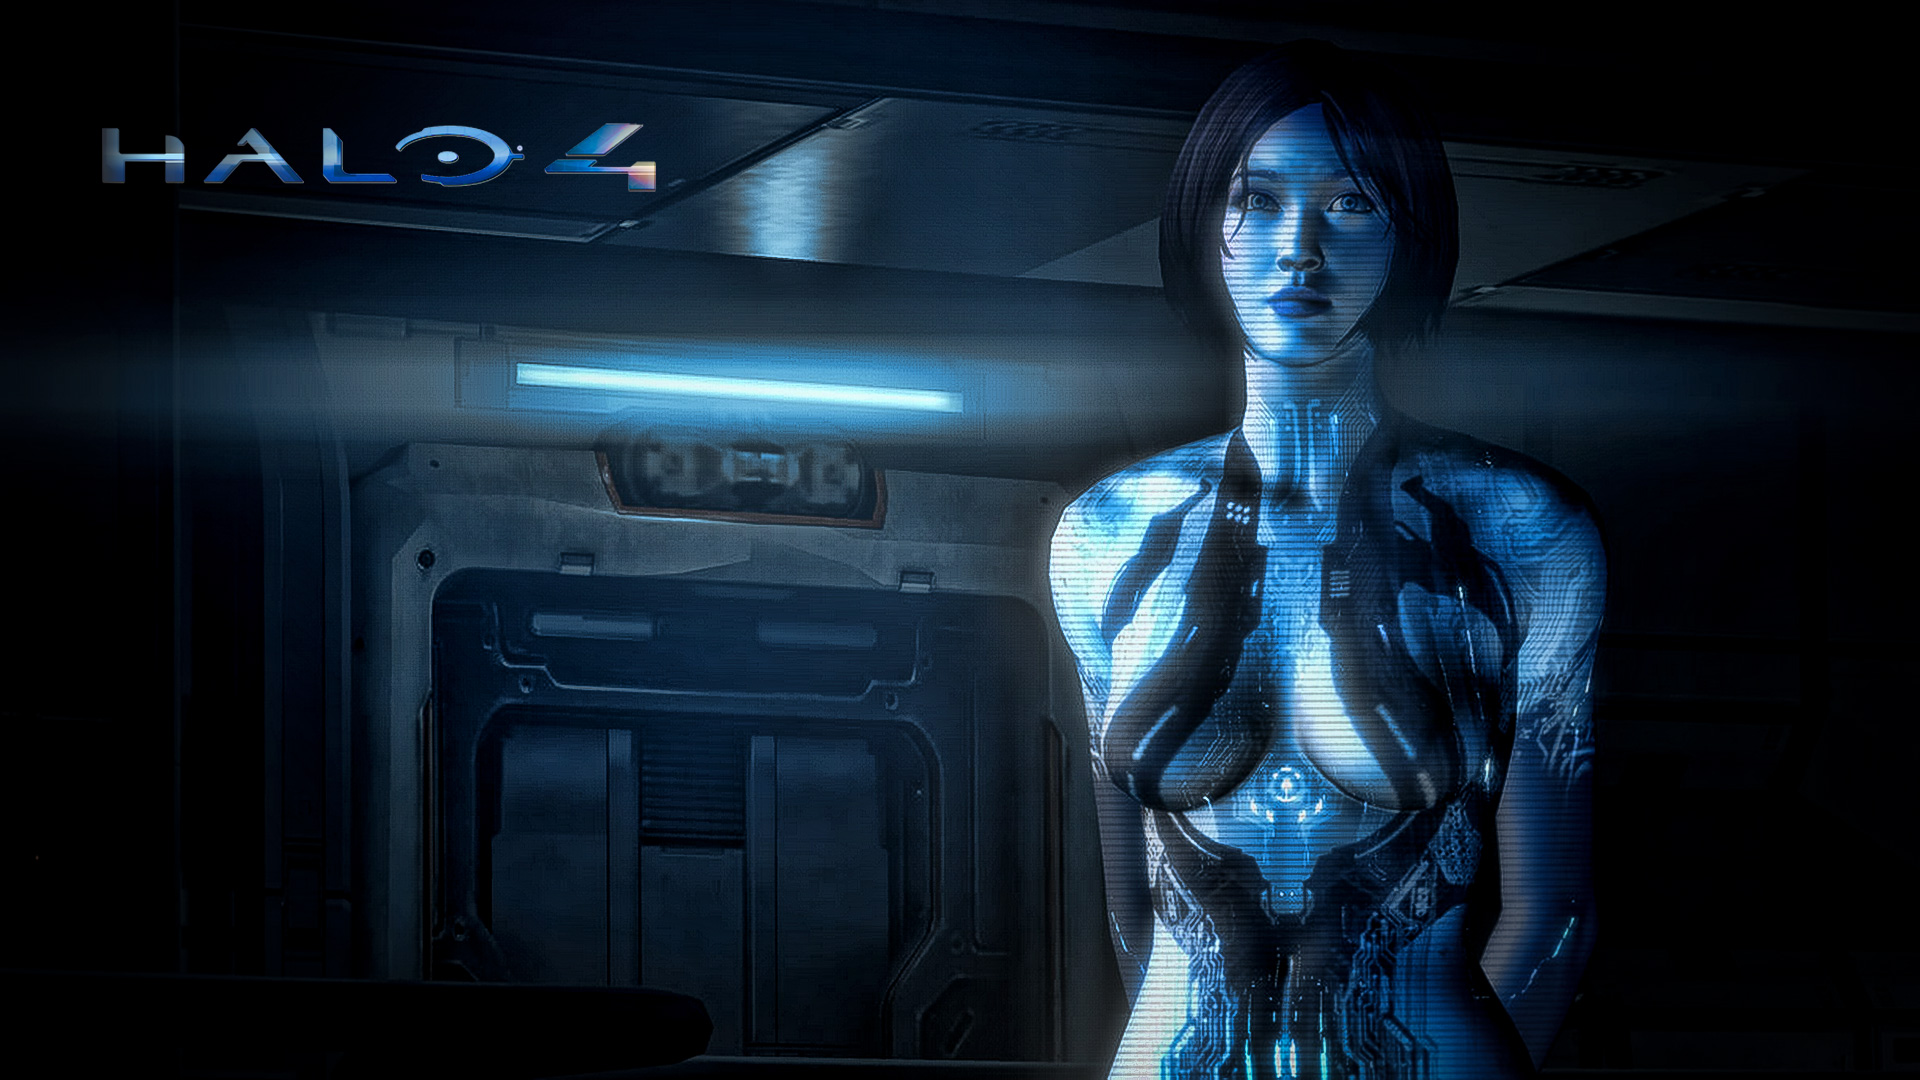 Halo 4 full hd wallpaper and background image 1920x1080 id519215 video game halo 4 cortana halo wallpaper voltagebd Images